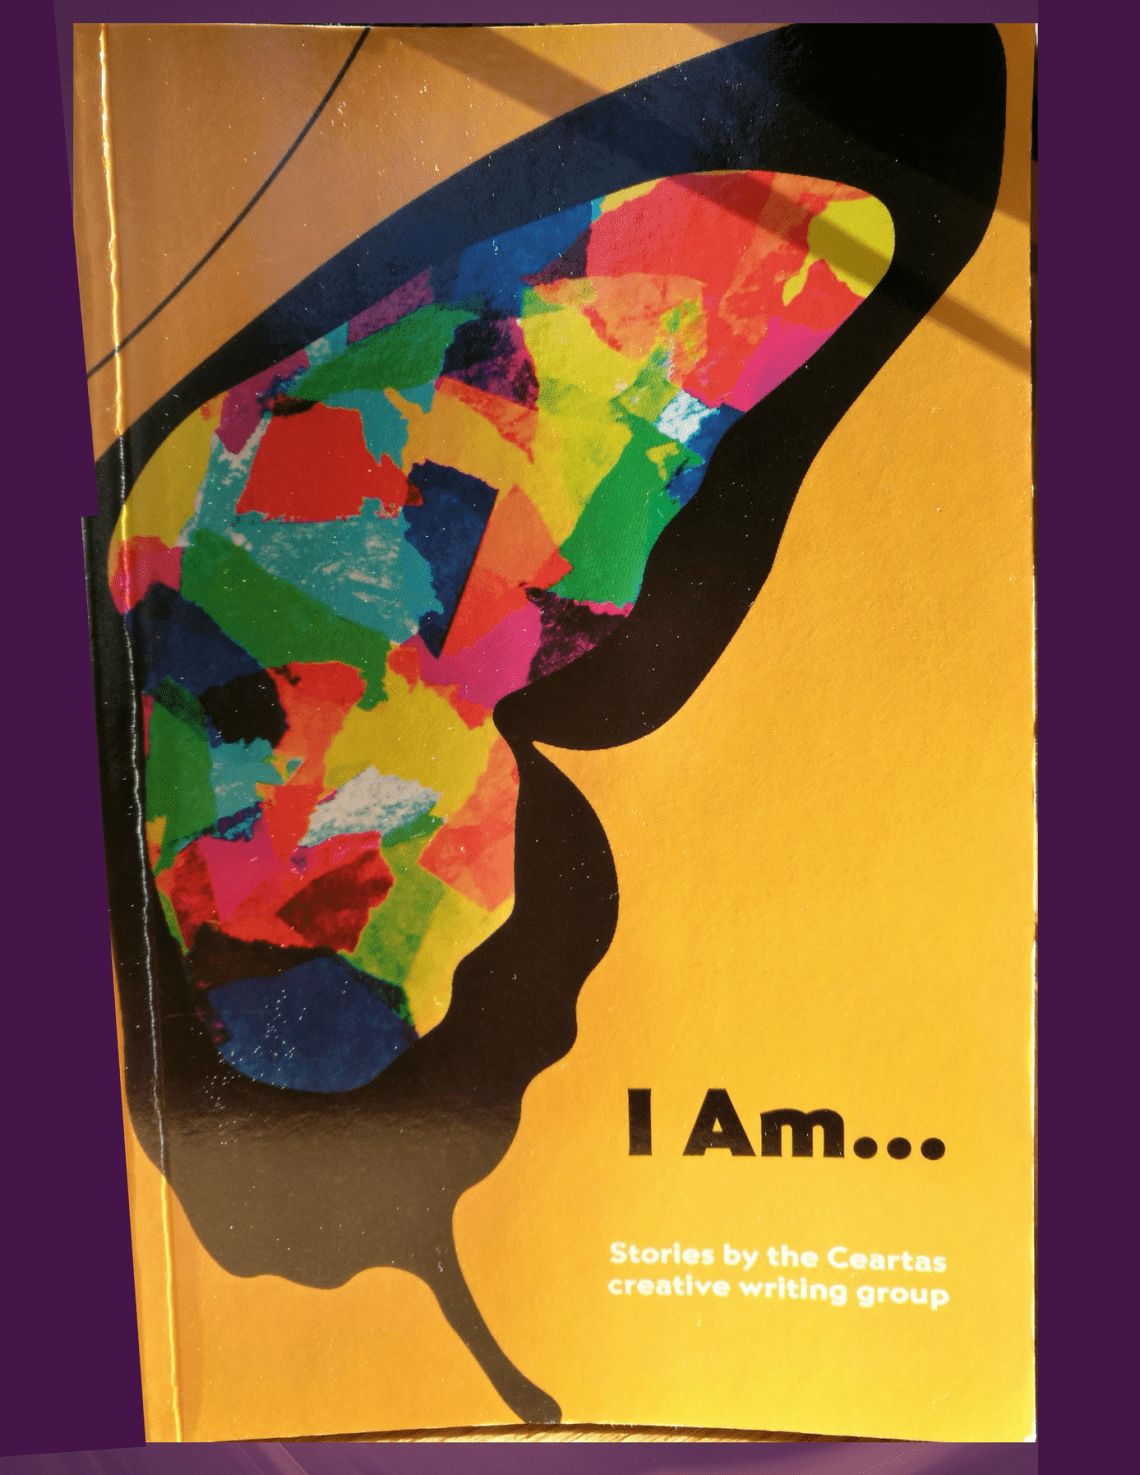 I Am... Ceartas Advocacy Creative Writing Group Book Cover